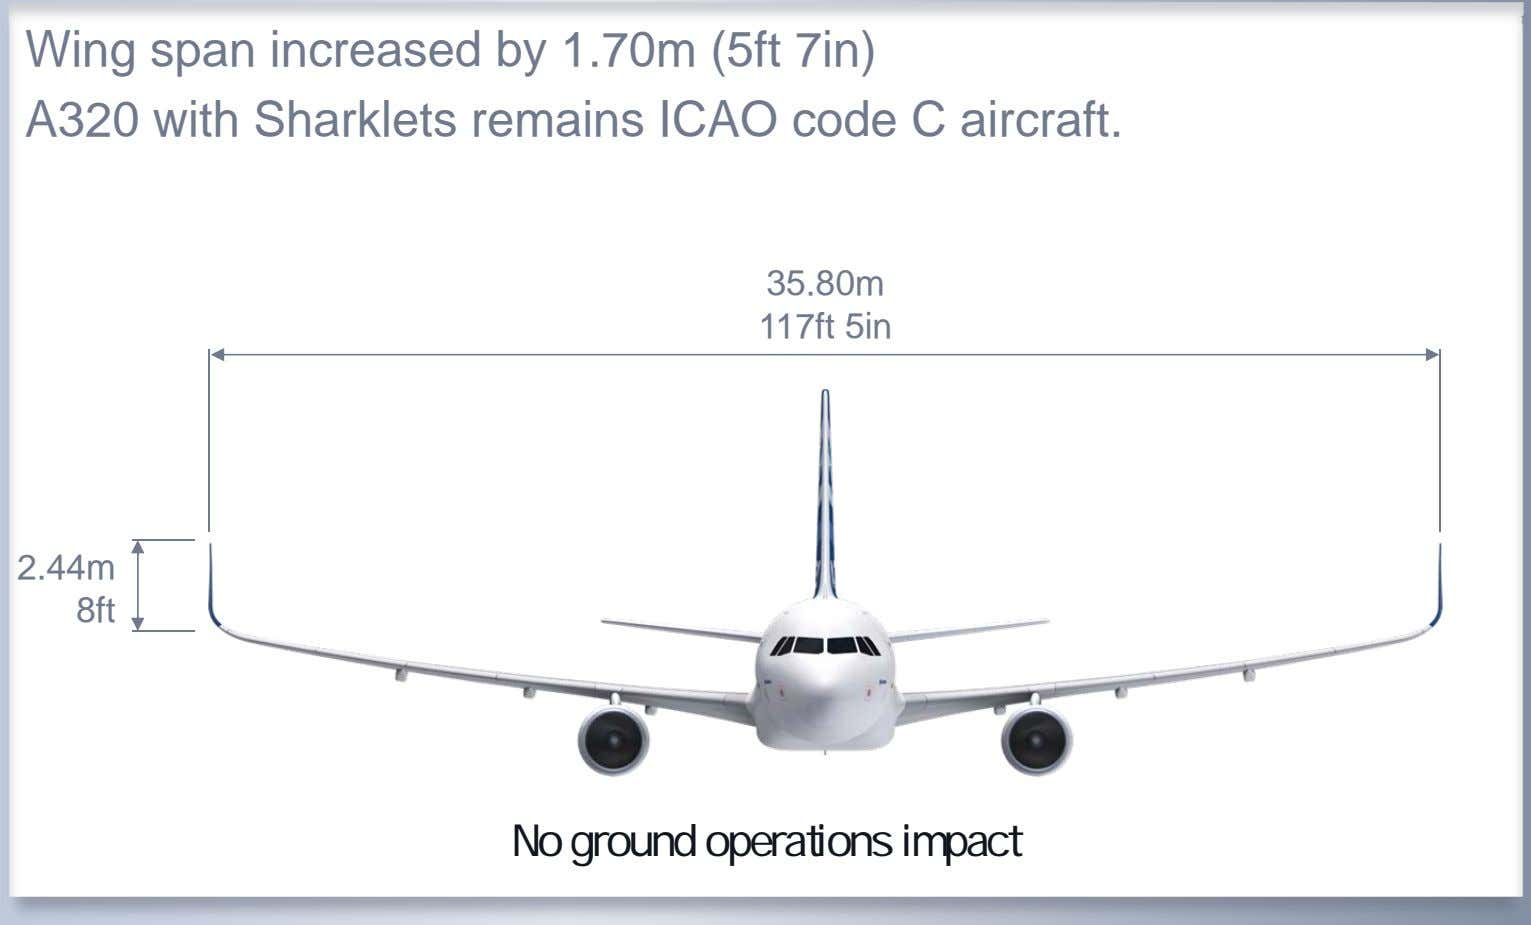 Wing span increased by 1.70m (5ft 7in) A320 with Sharklets remains ICAO code C aircraft.